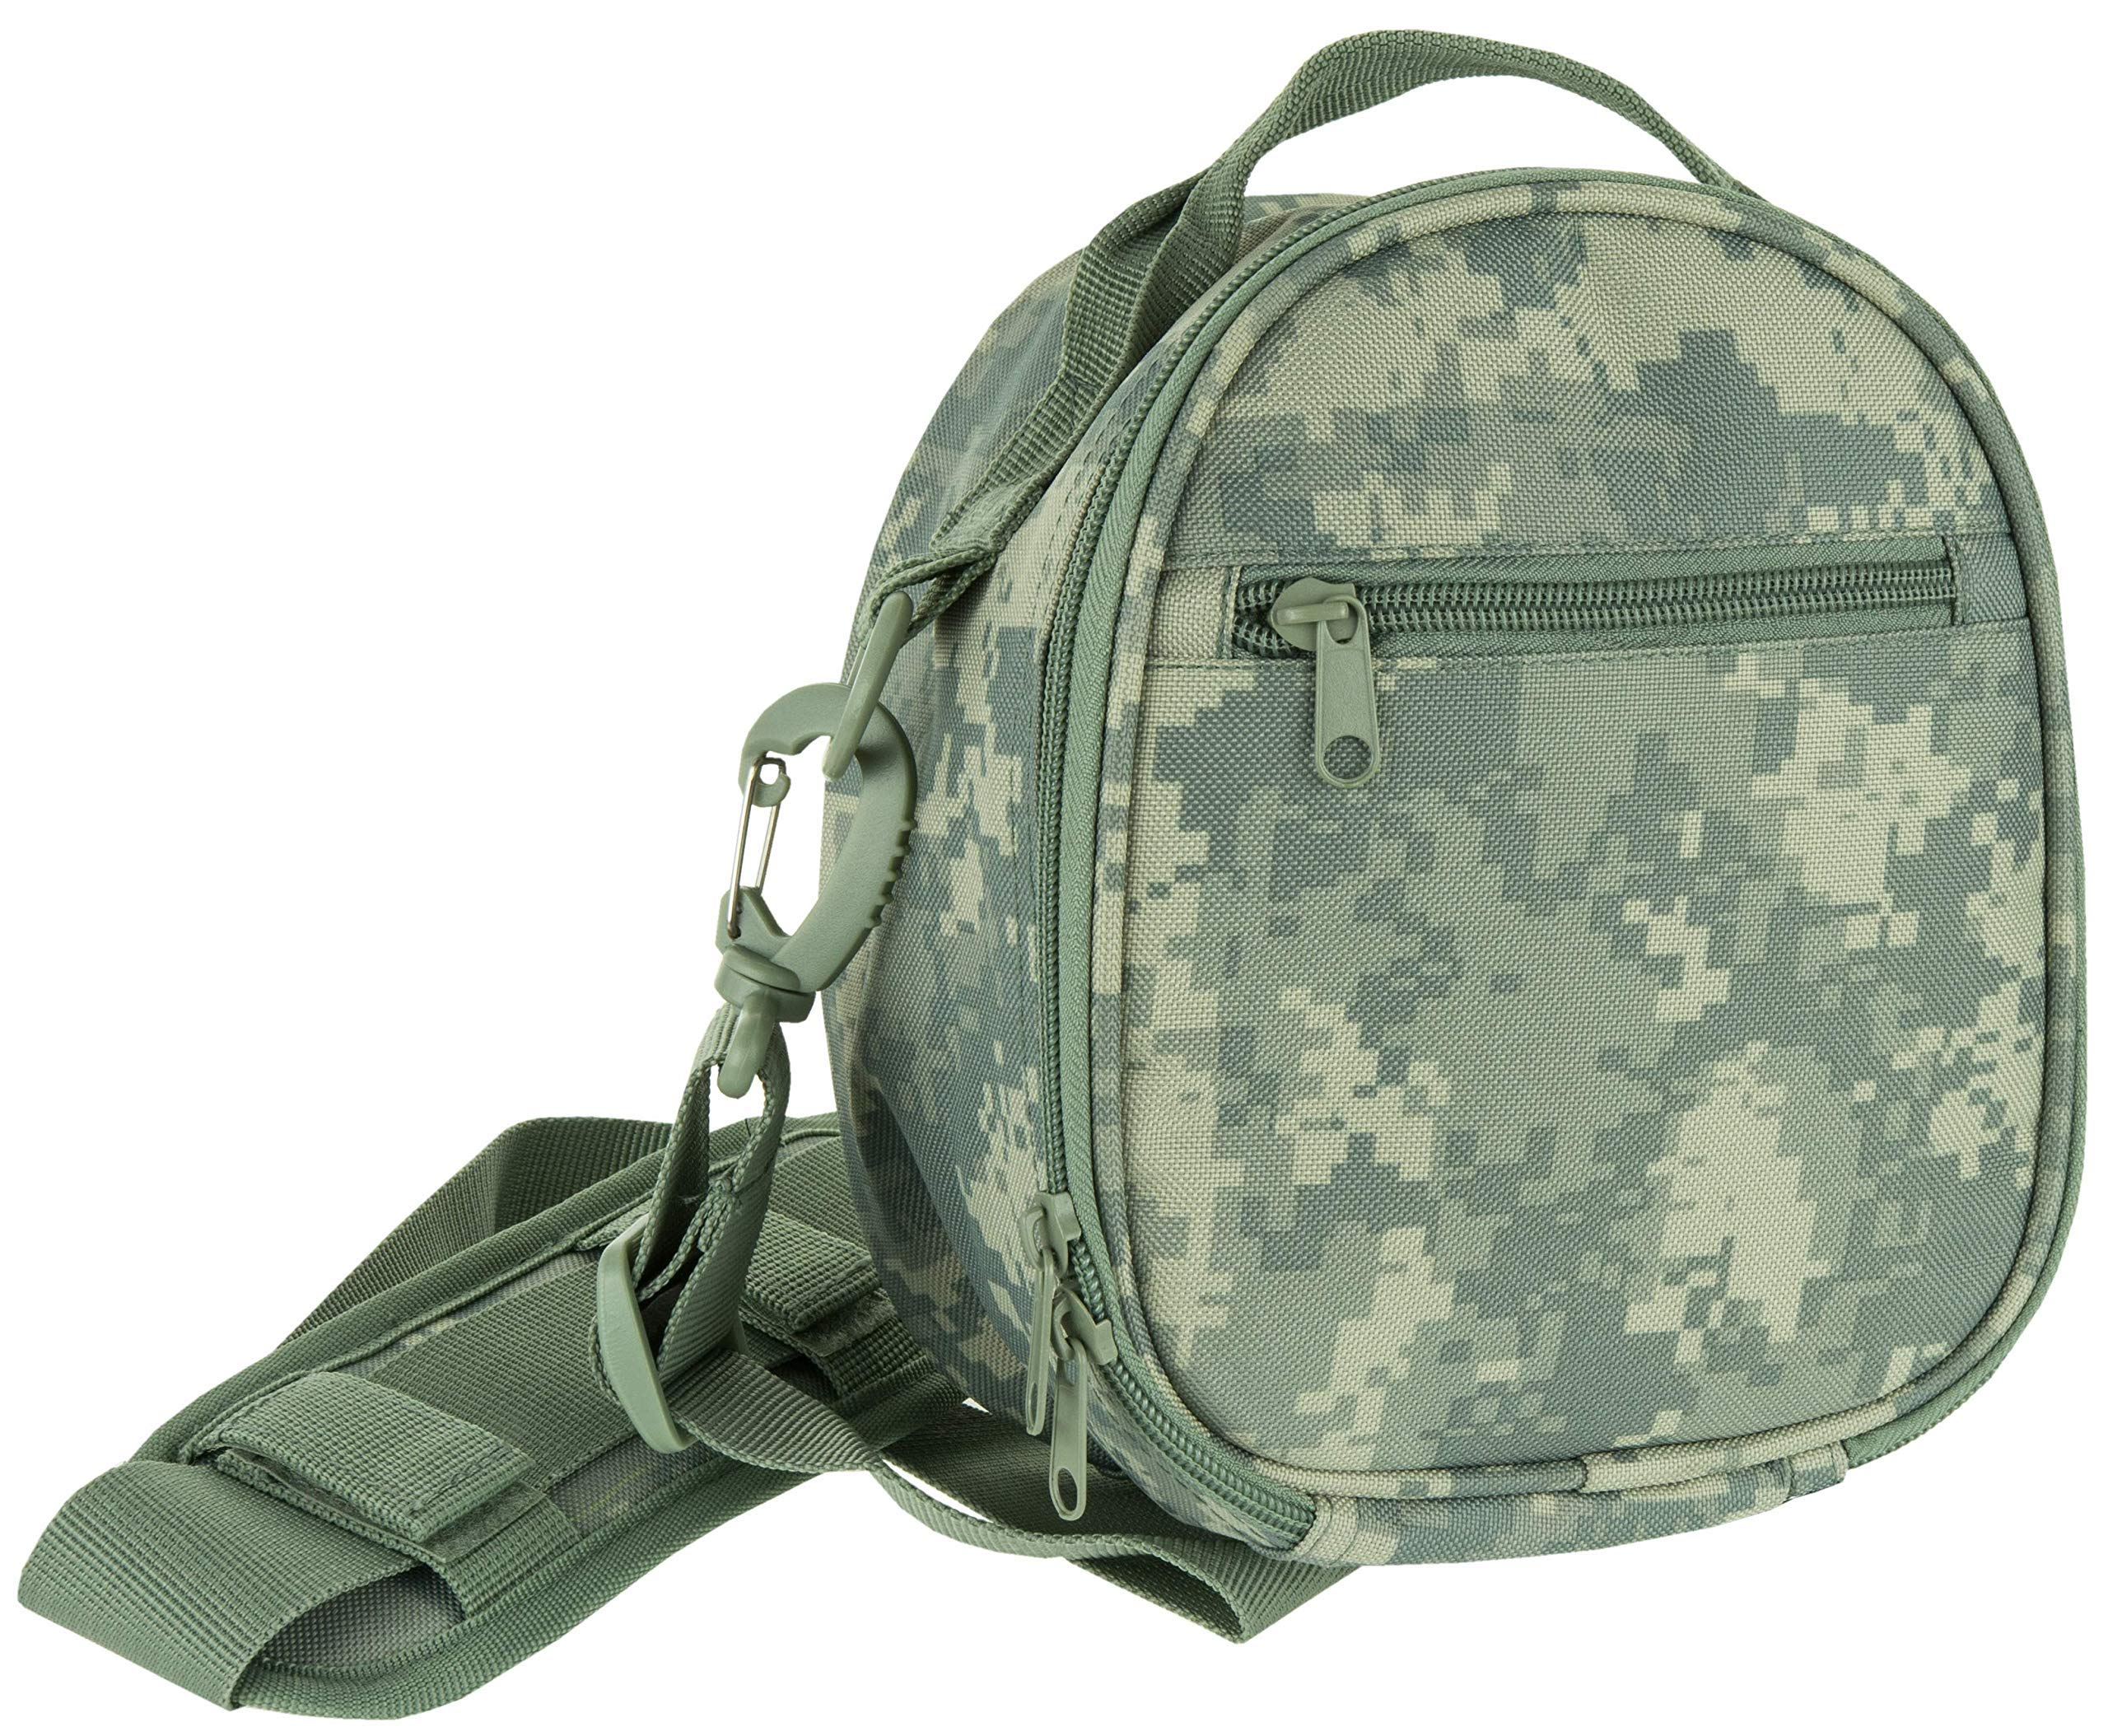 ACE Travel Case for Howard Leight Impact Sport, Impact PRO, MSA Sordin Supreme, Sportac Hearing Protection, Carry Bag with Adjustable Shoulder Strap, Digital ACU Camo by ACE Instruments